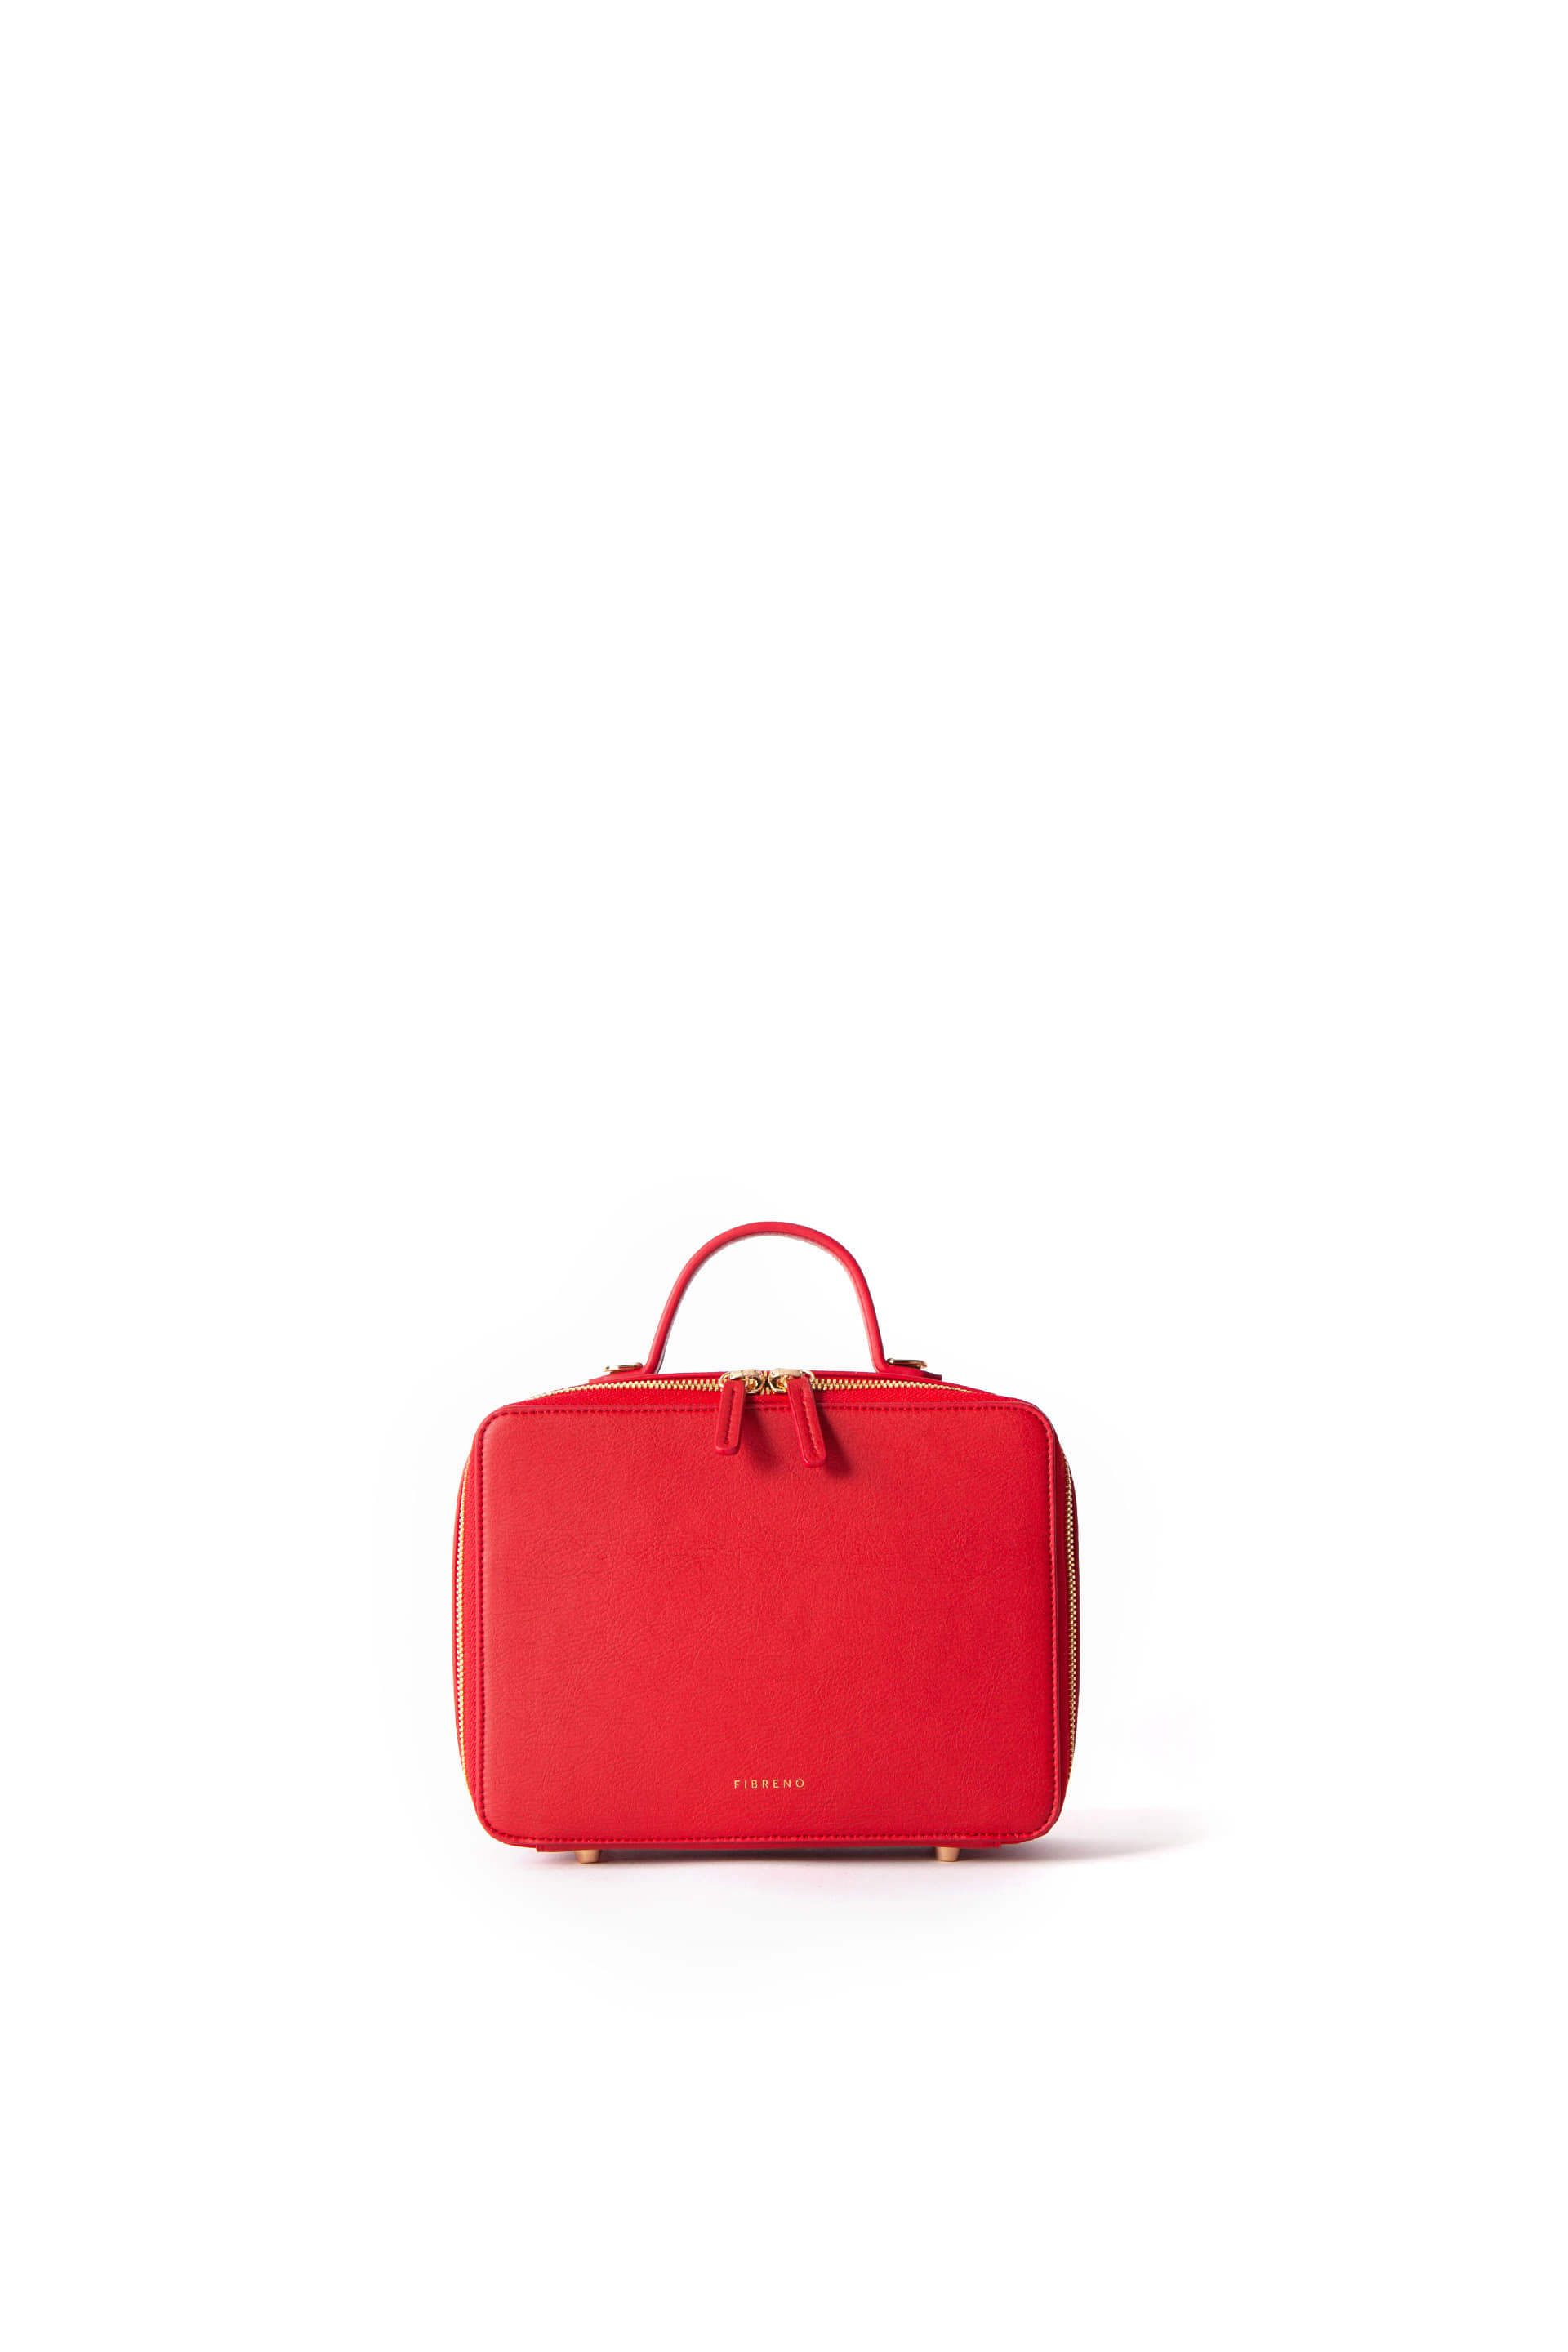 BB SQUARE BAG 06 Red